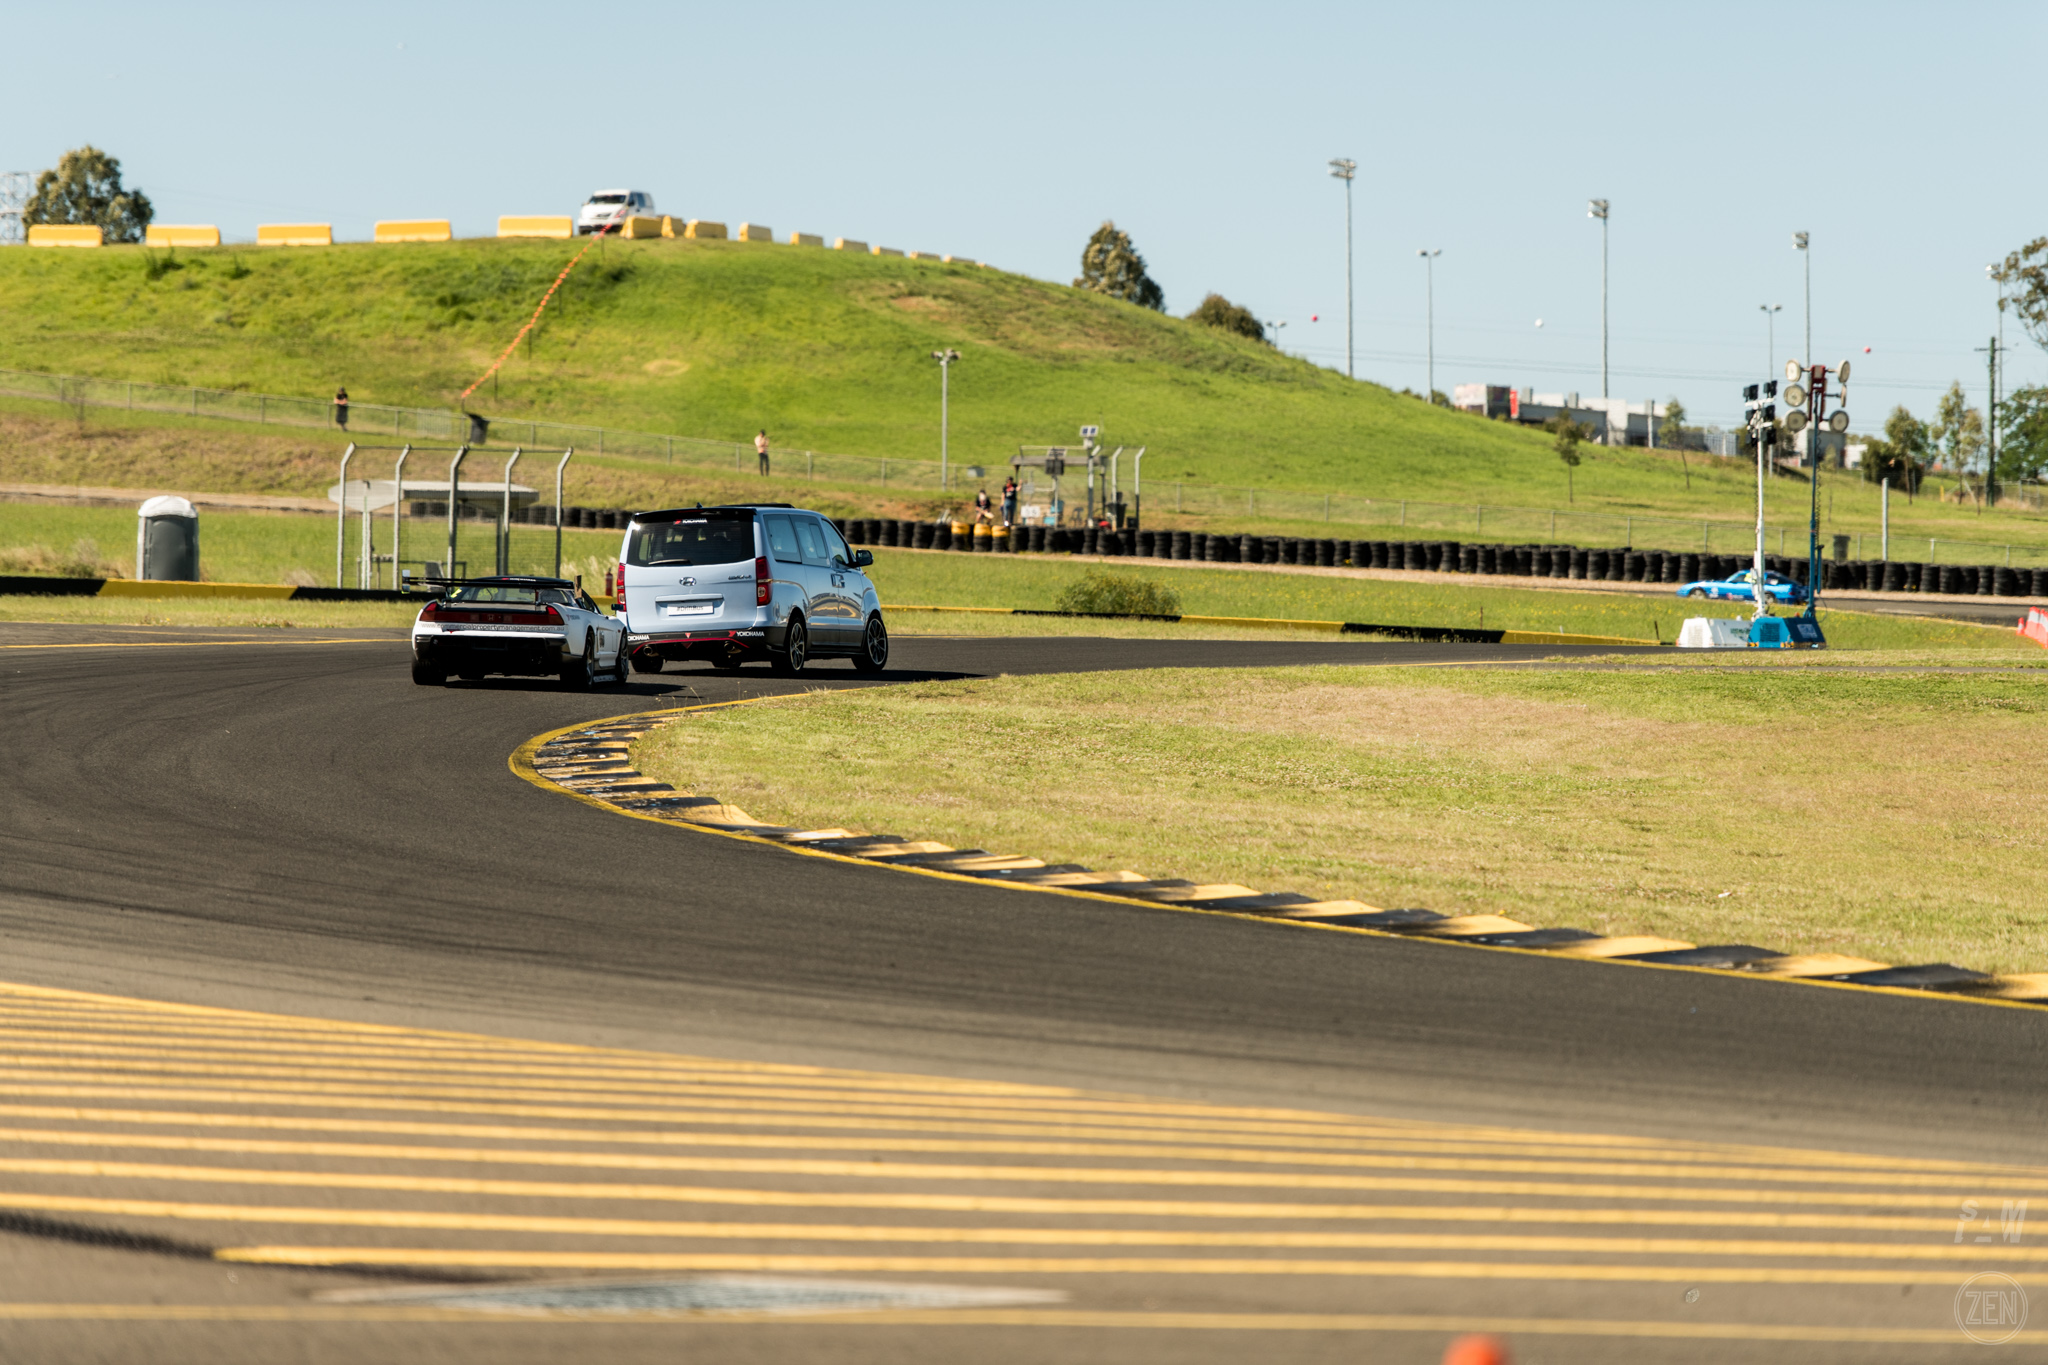 2019-10-18 - WTAC Day 01 032